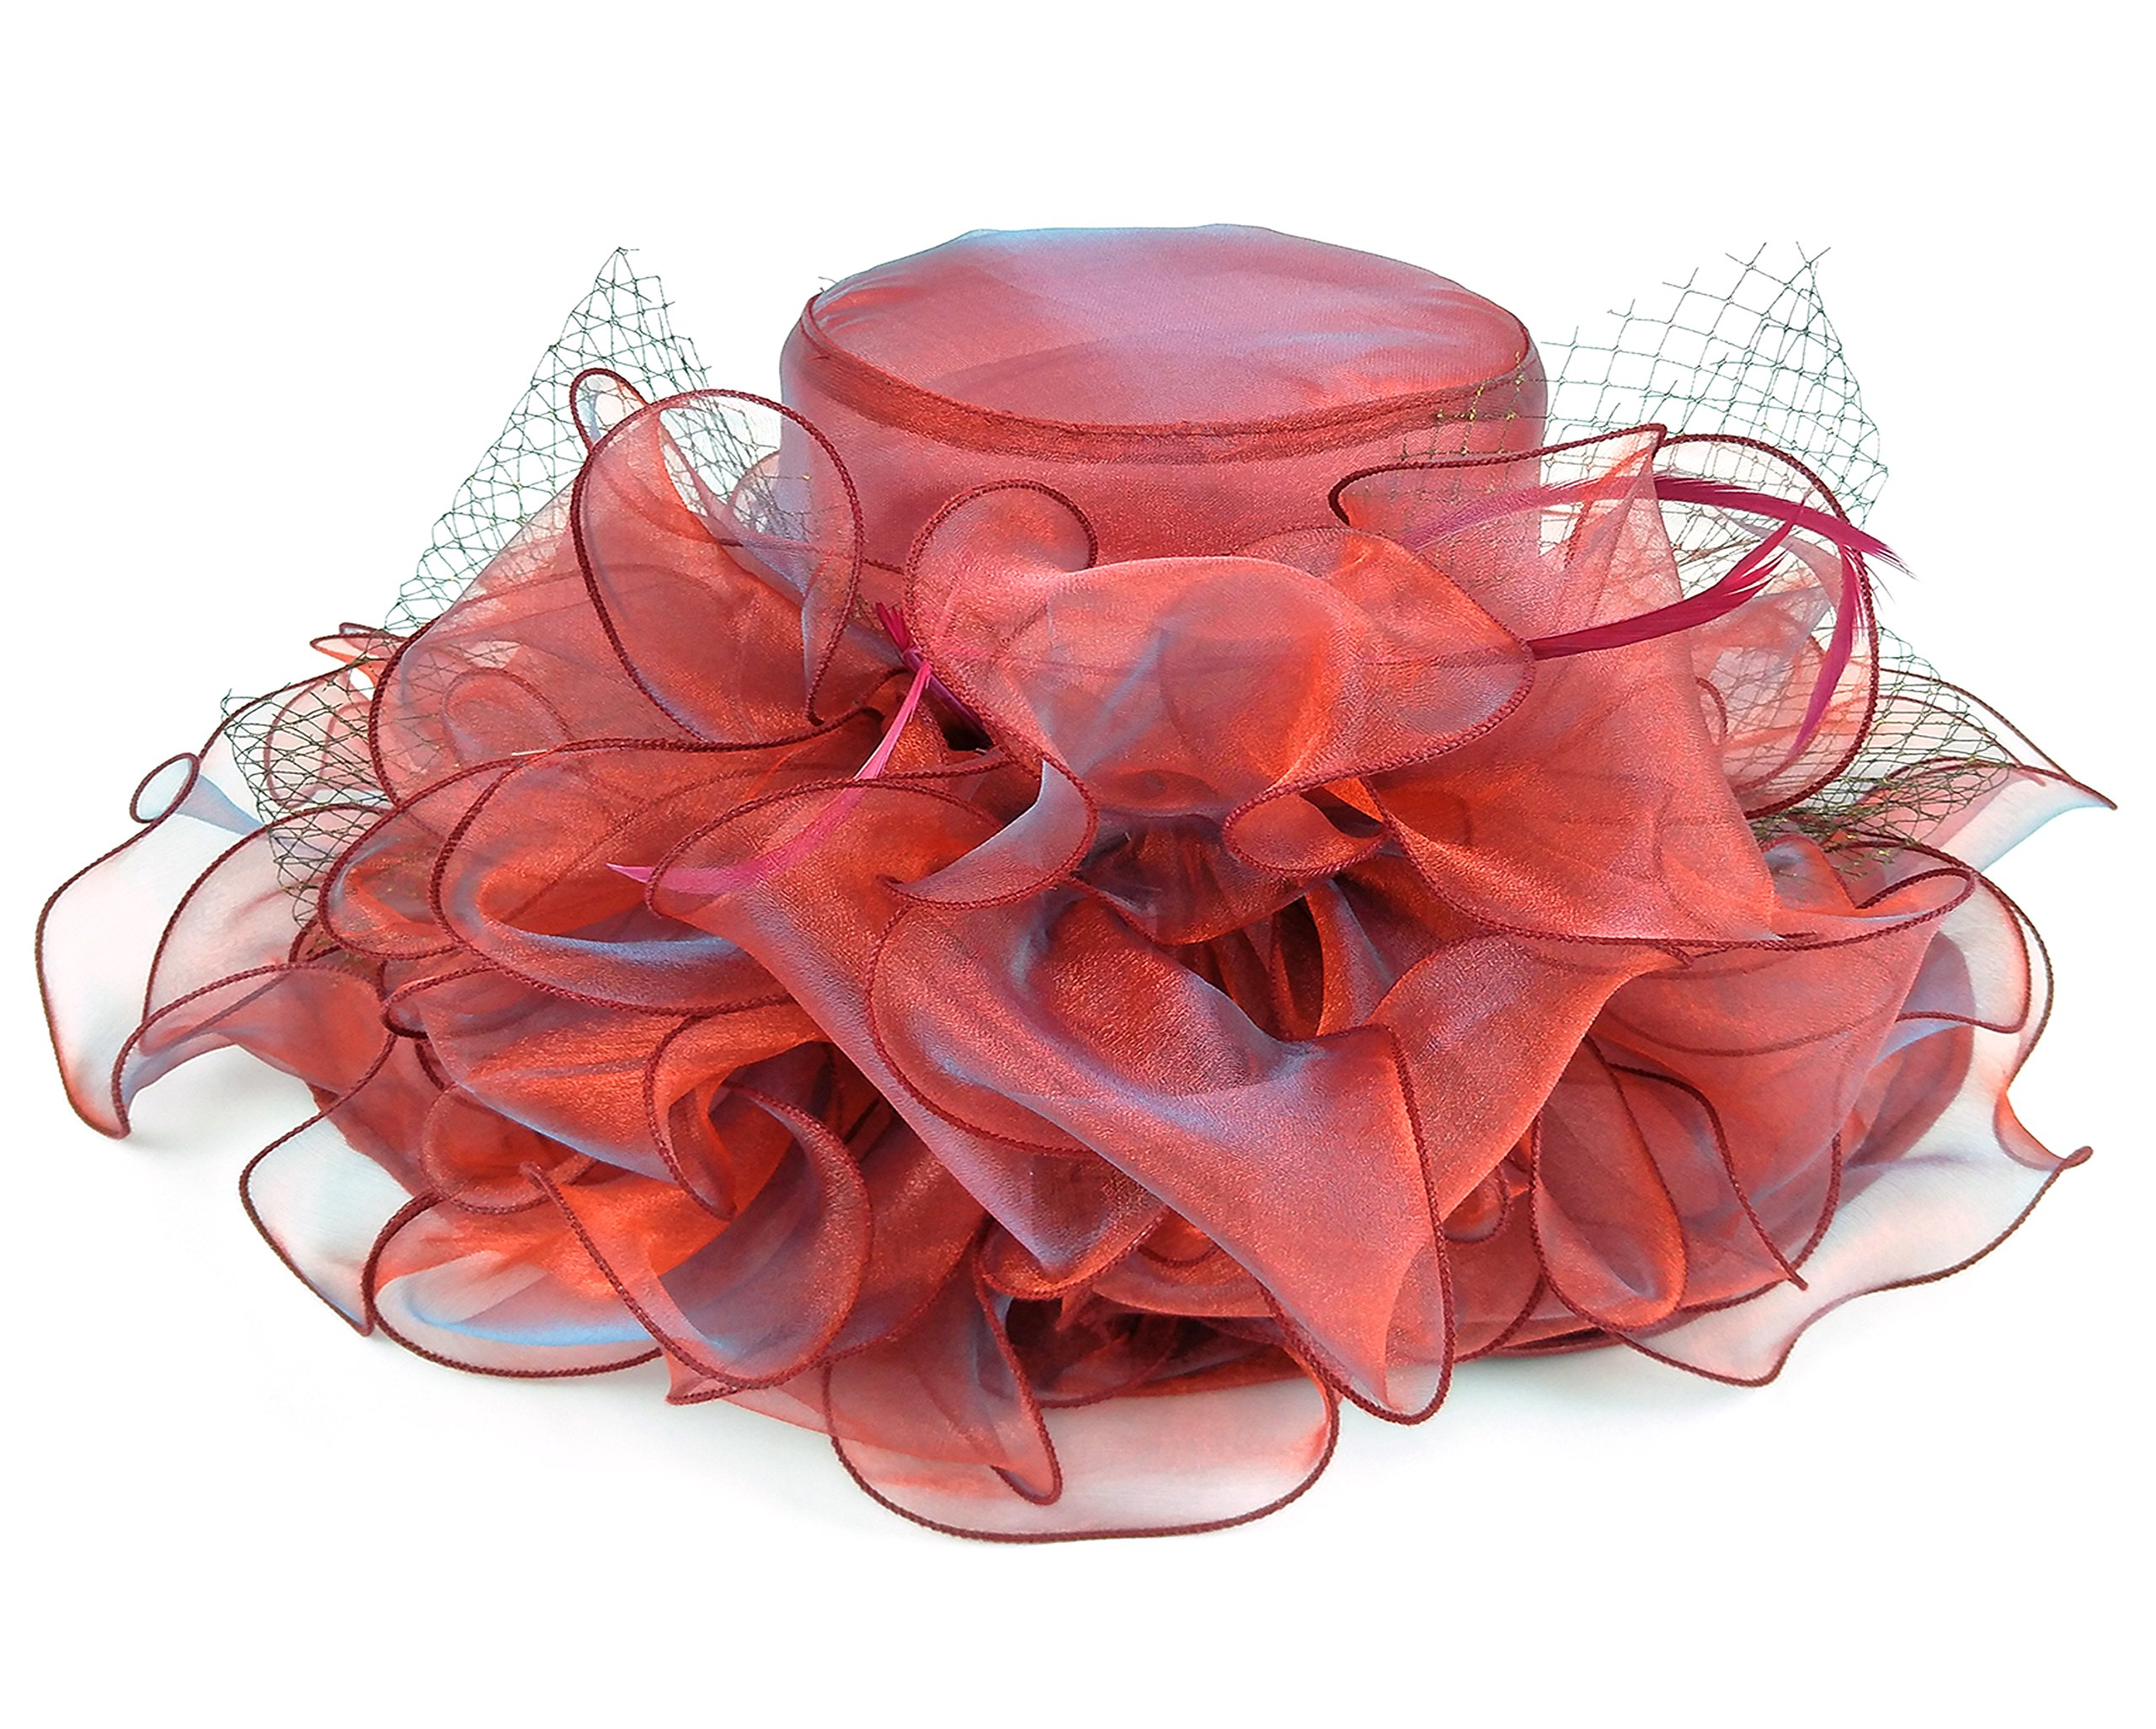 Seven Flowers Kentucky Derby Hats for Women Church Ladies Wedding British Tea Party Hat (12-red) by Seven Flowers (Image #3)